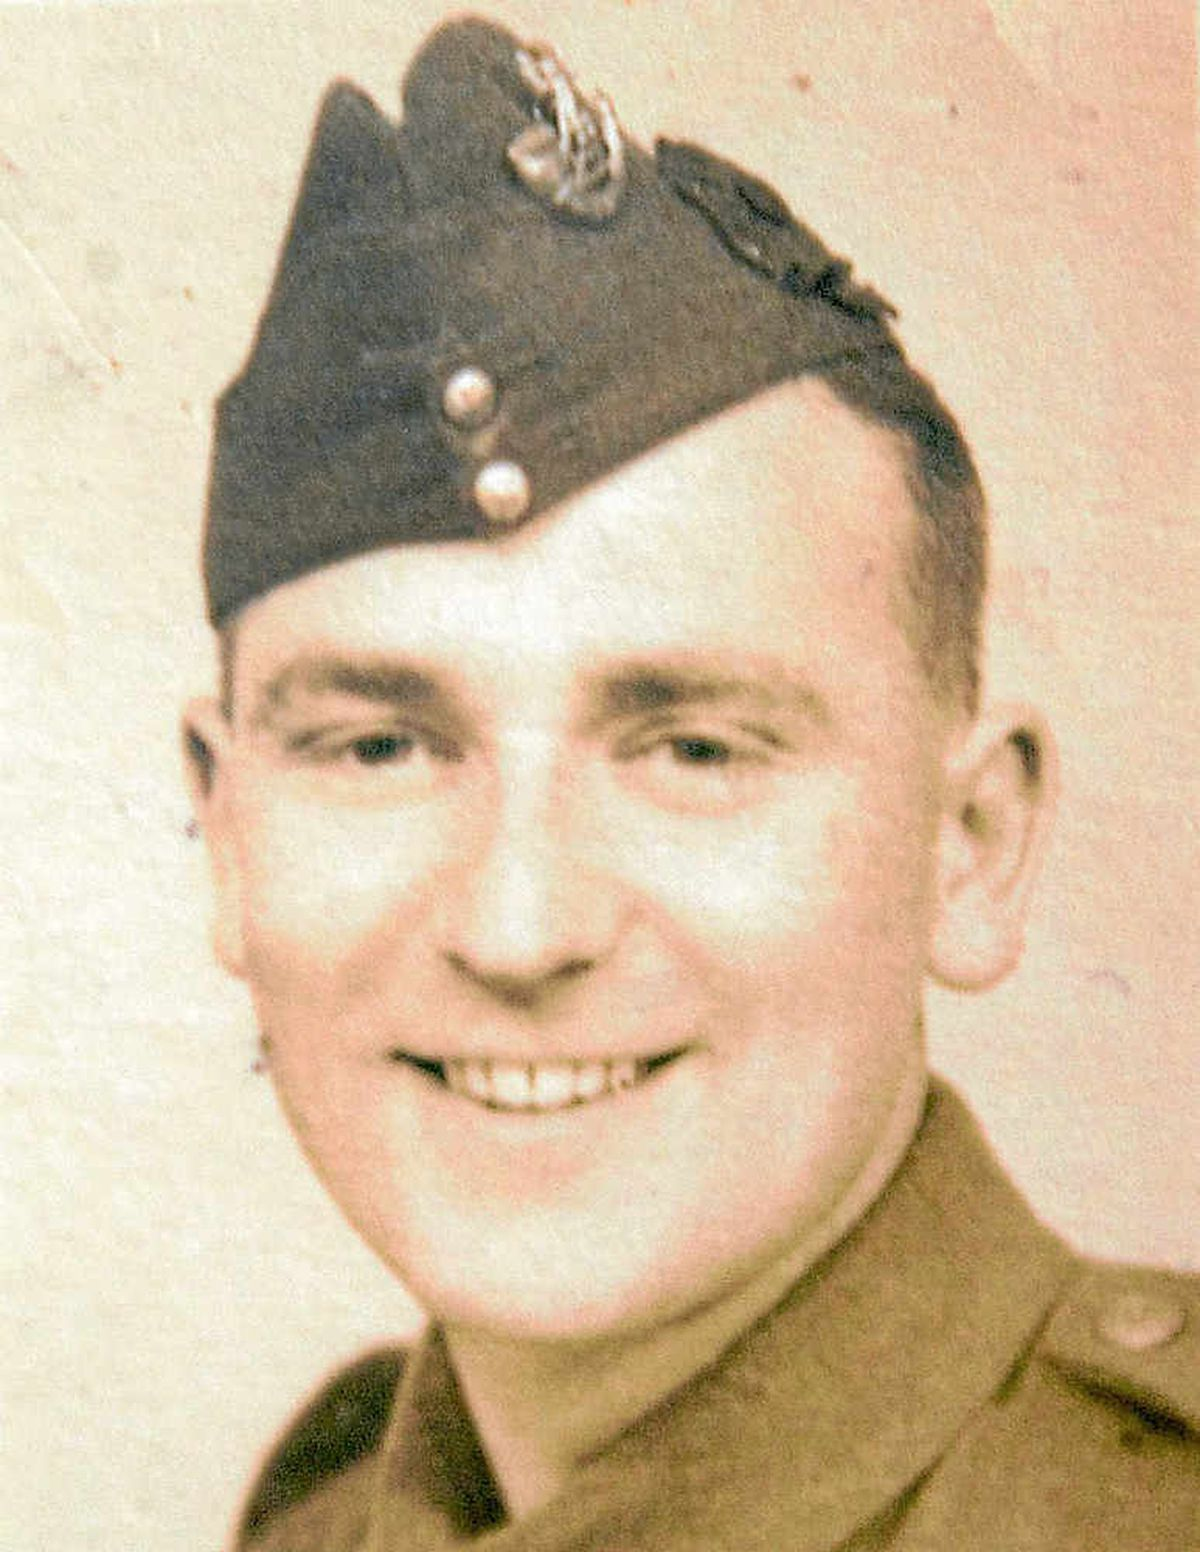 Harry Langford was a sergeant in the Second World War